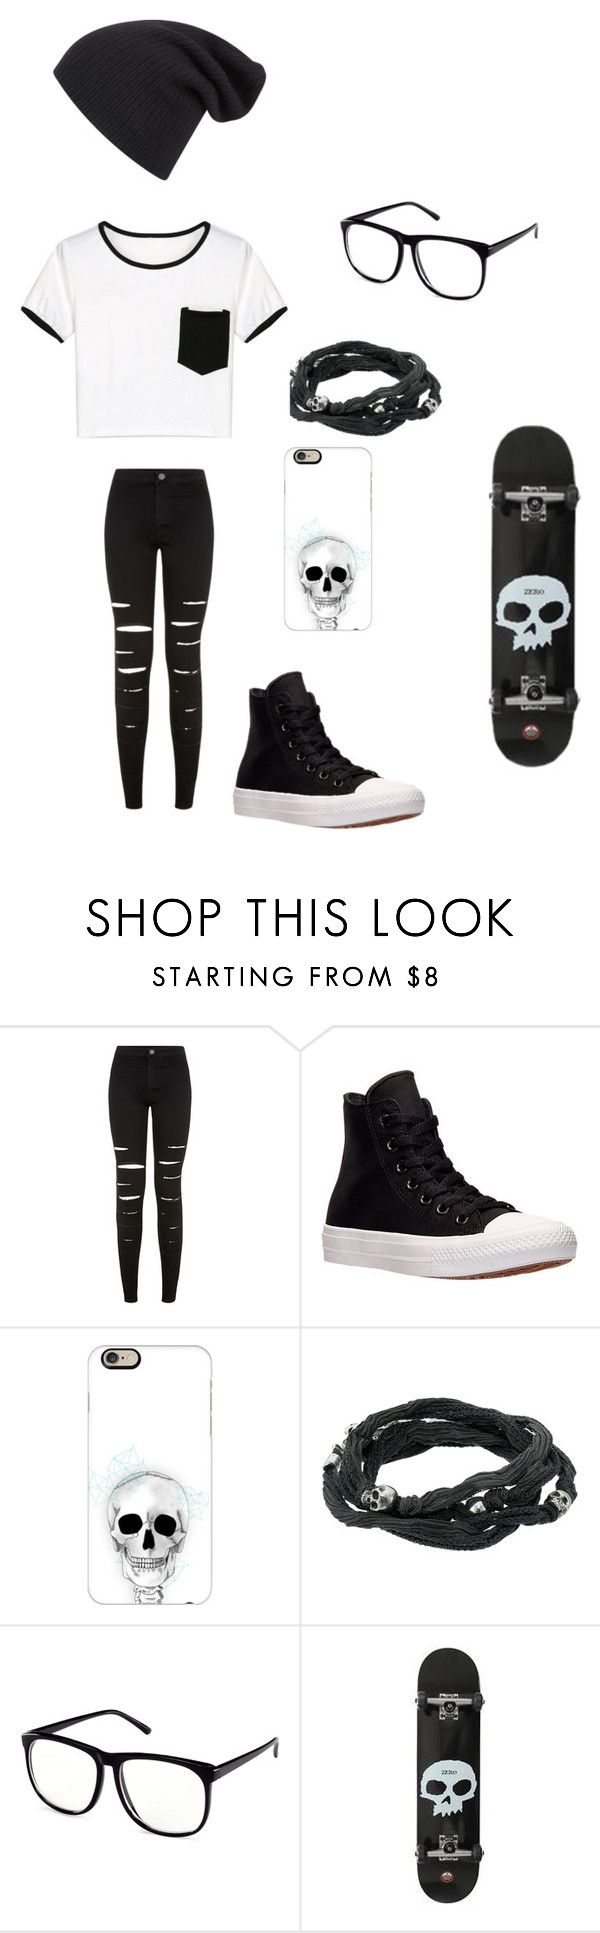 """""""Untitled #110"""" by darksoul7 on Polyvore featuring New Look, Converse, Casetify, King Baby Studio, H&M and WithChic"""